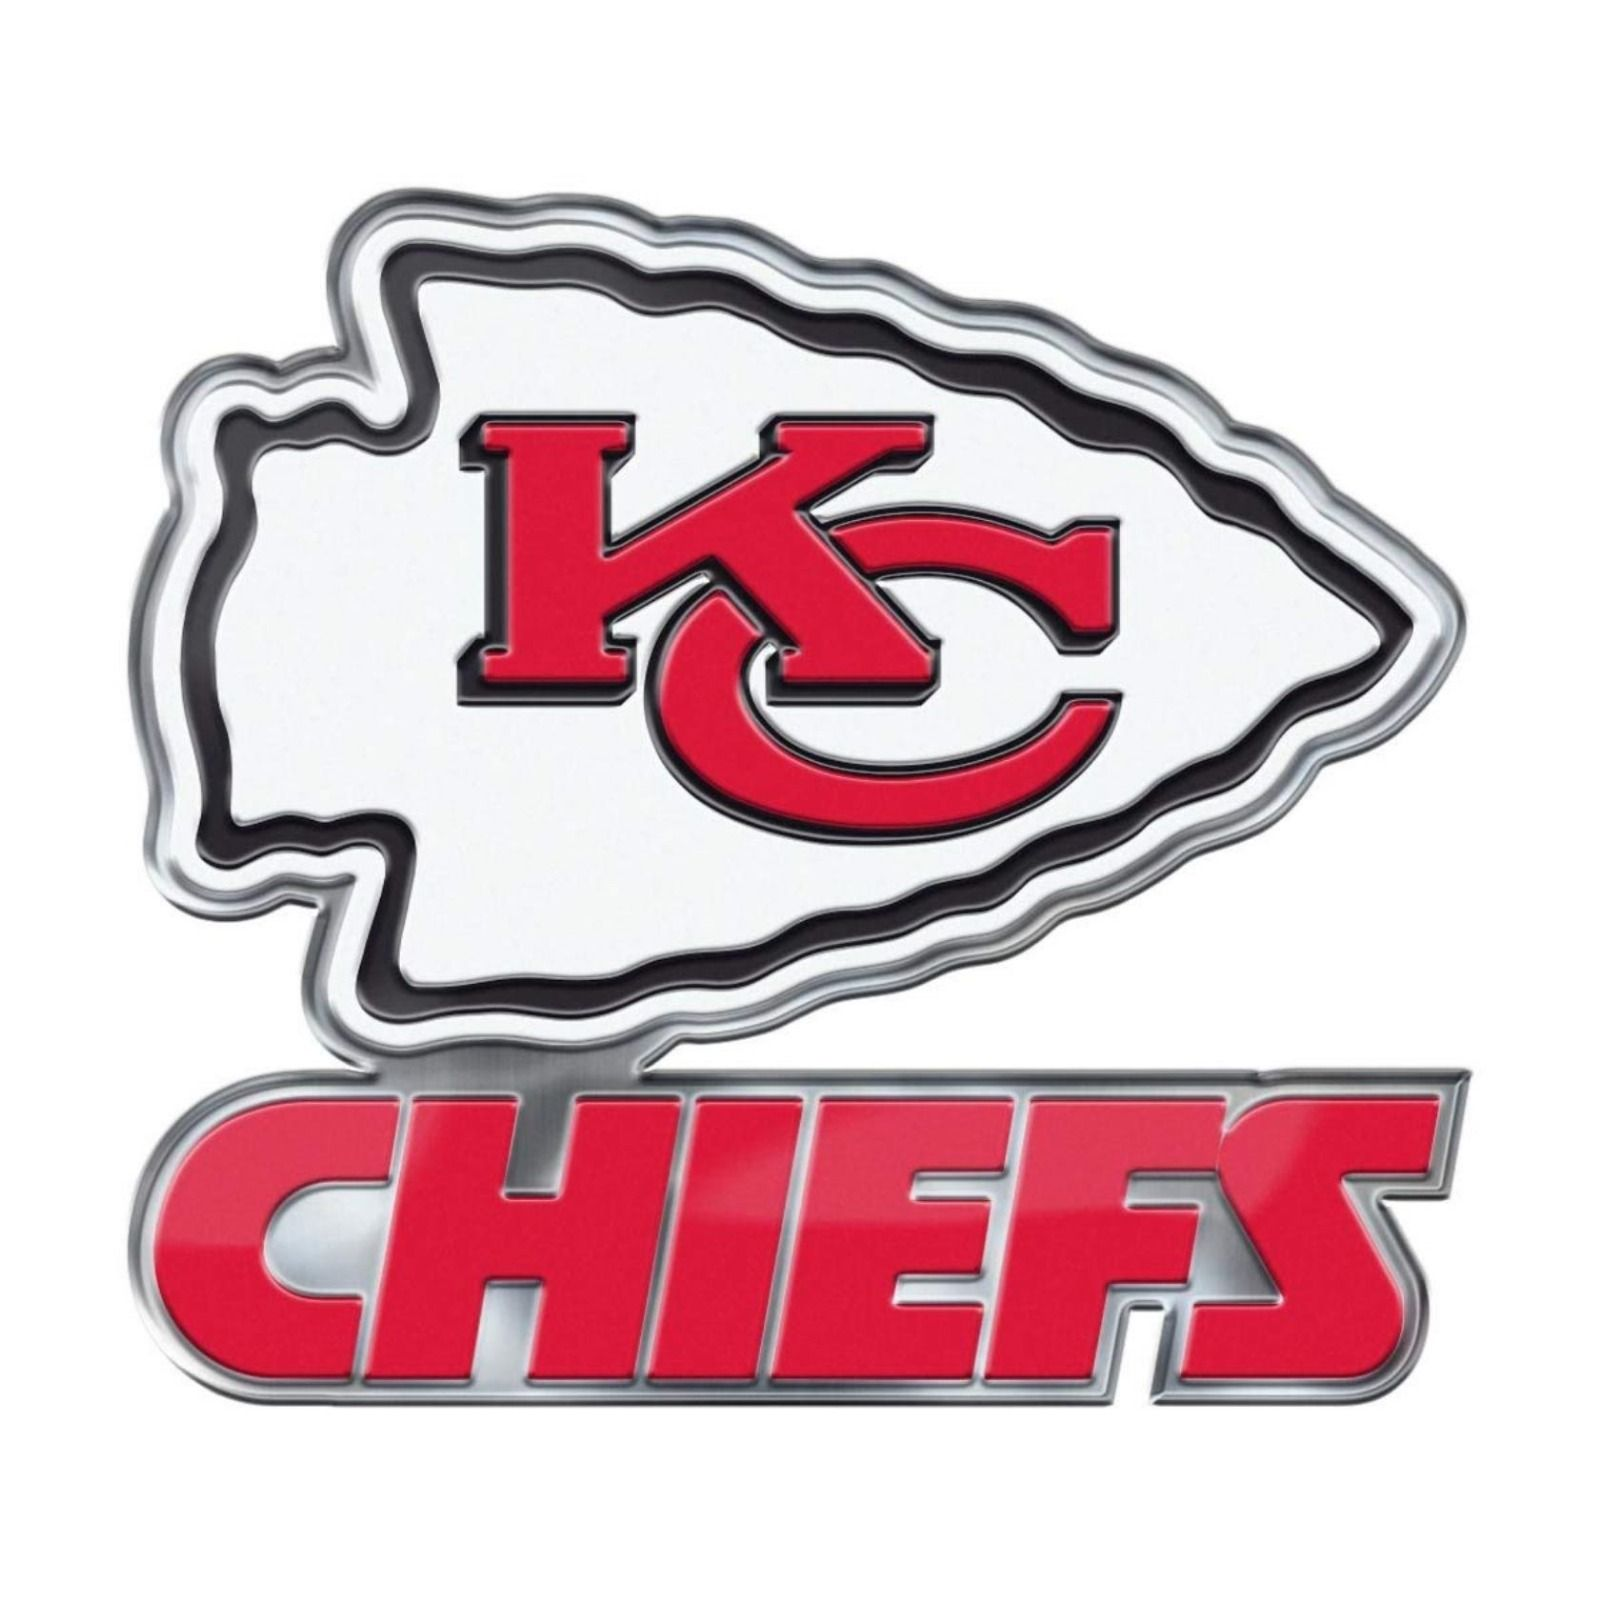 Kansas City Chiefs Logo - Kansas City Chiefs CE4 Alternate Logo Color Auto Emblem Chrome Decal ...